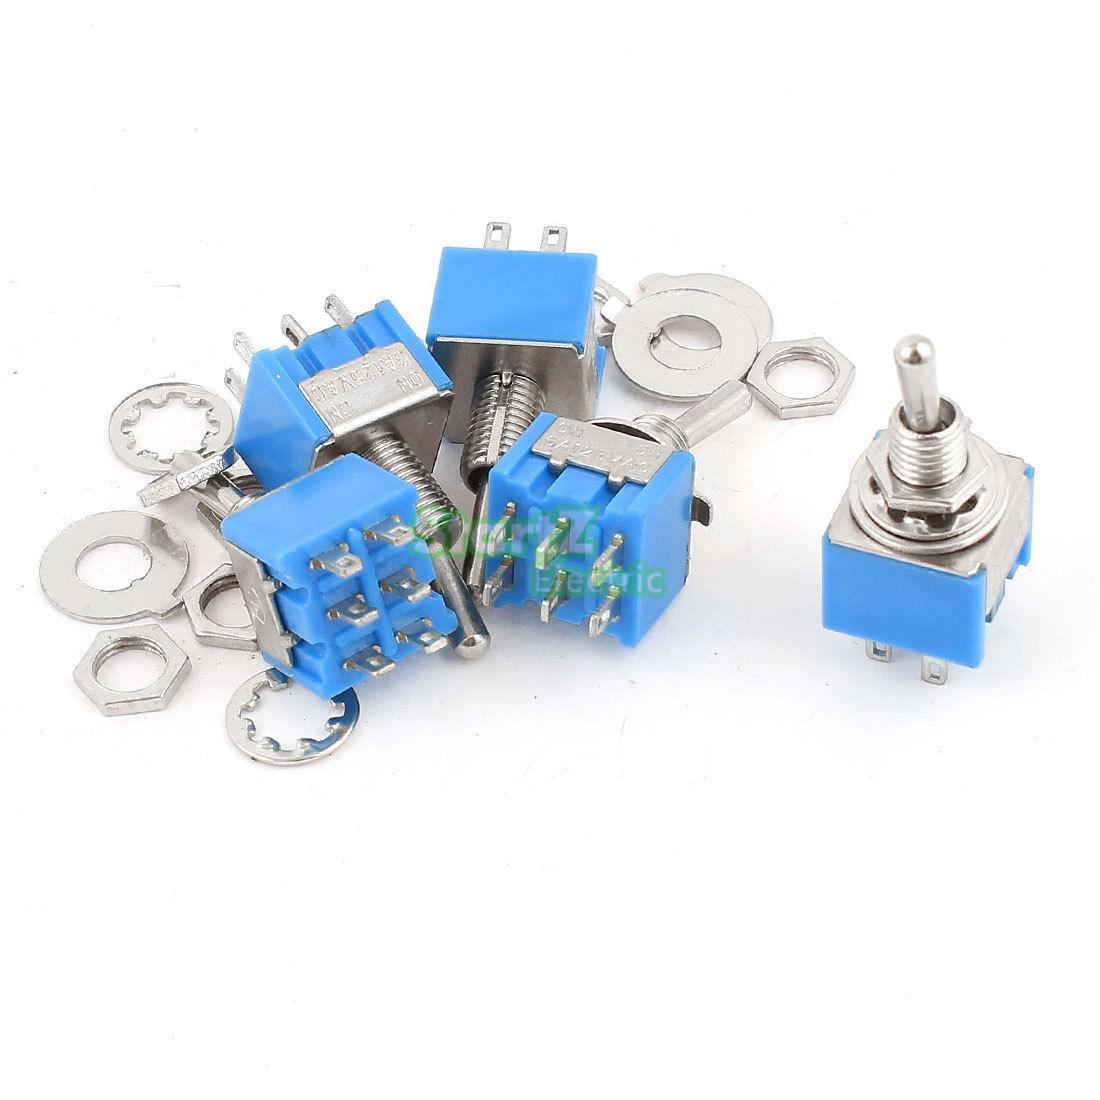 Good Ac125v 6a Dpdt On-on 2 Positions 6 Pin Latching Miniature Toggle Switch 20pcs Air Conditioning Appliance Parts